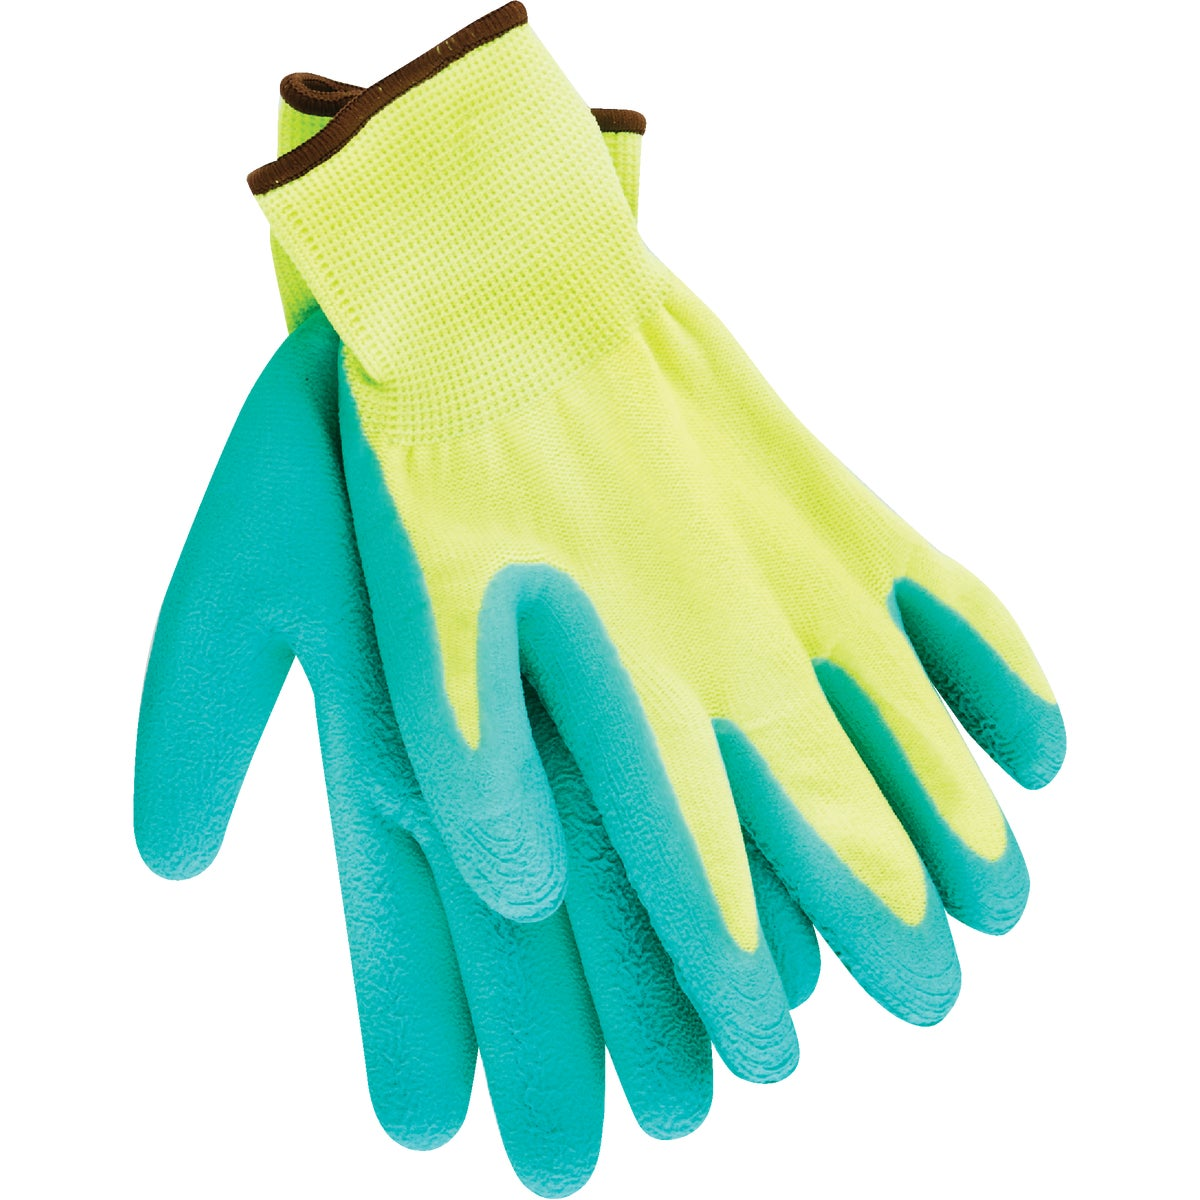 GREEN LARGE GRIP GLOVE - 703616 by Do it Best